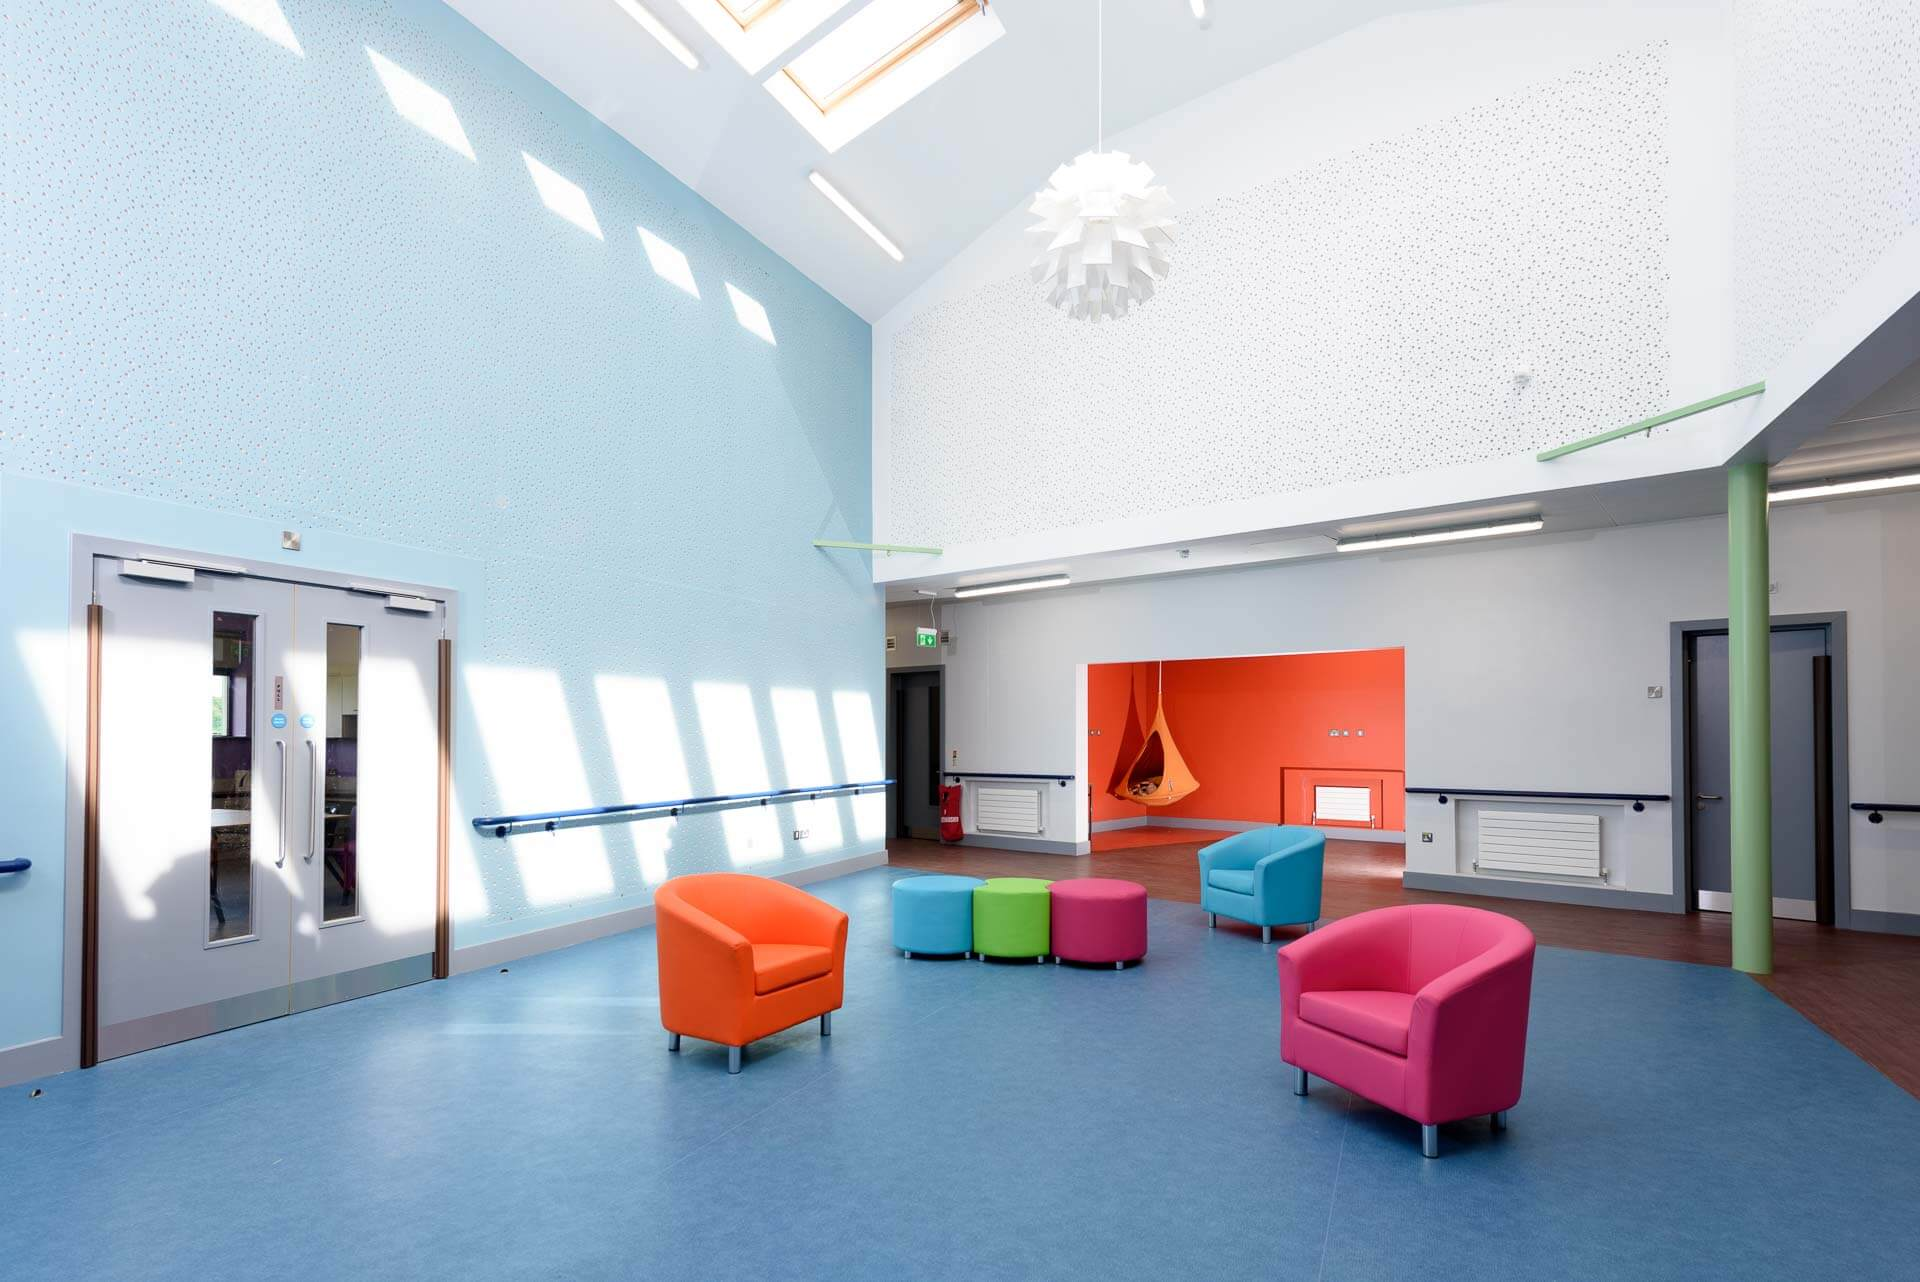 Central activity area with orange safe area off main single storey circulation area with rooflights, pendant light fittings and light blue rigitone acoustic wall forming central space consisting of orange, pink, green and blue stools and tub chairs.